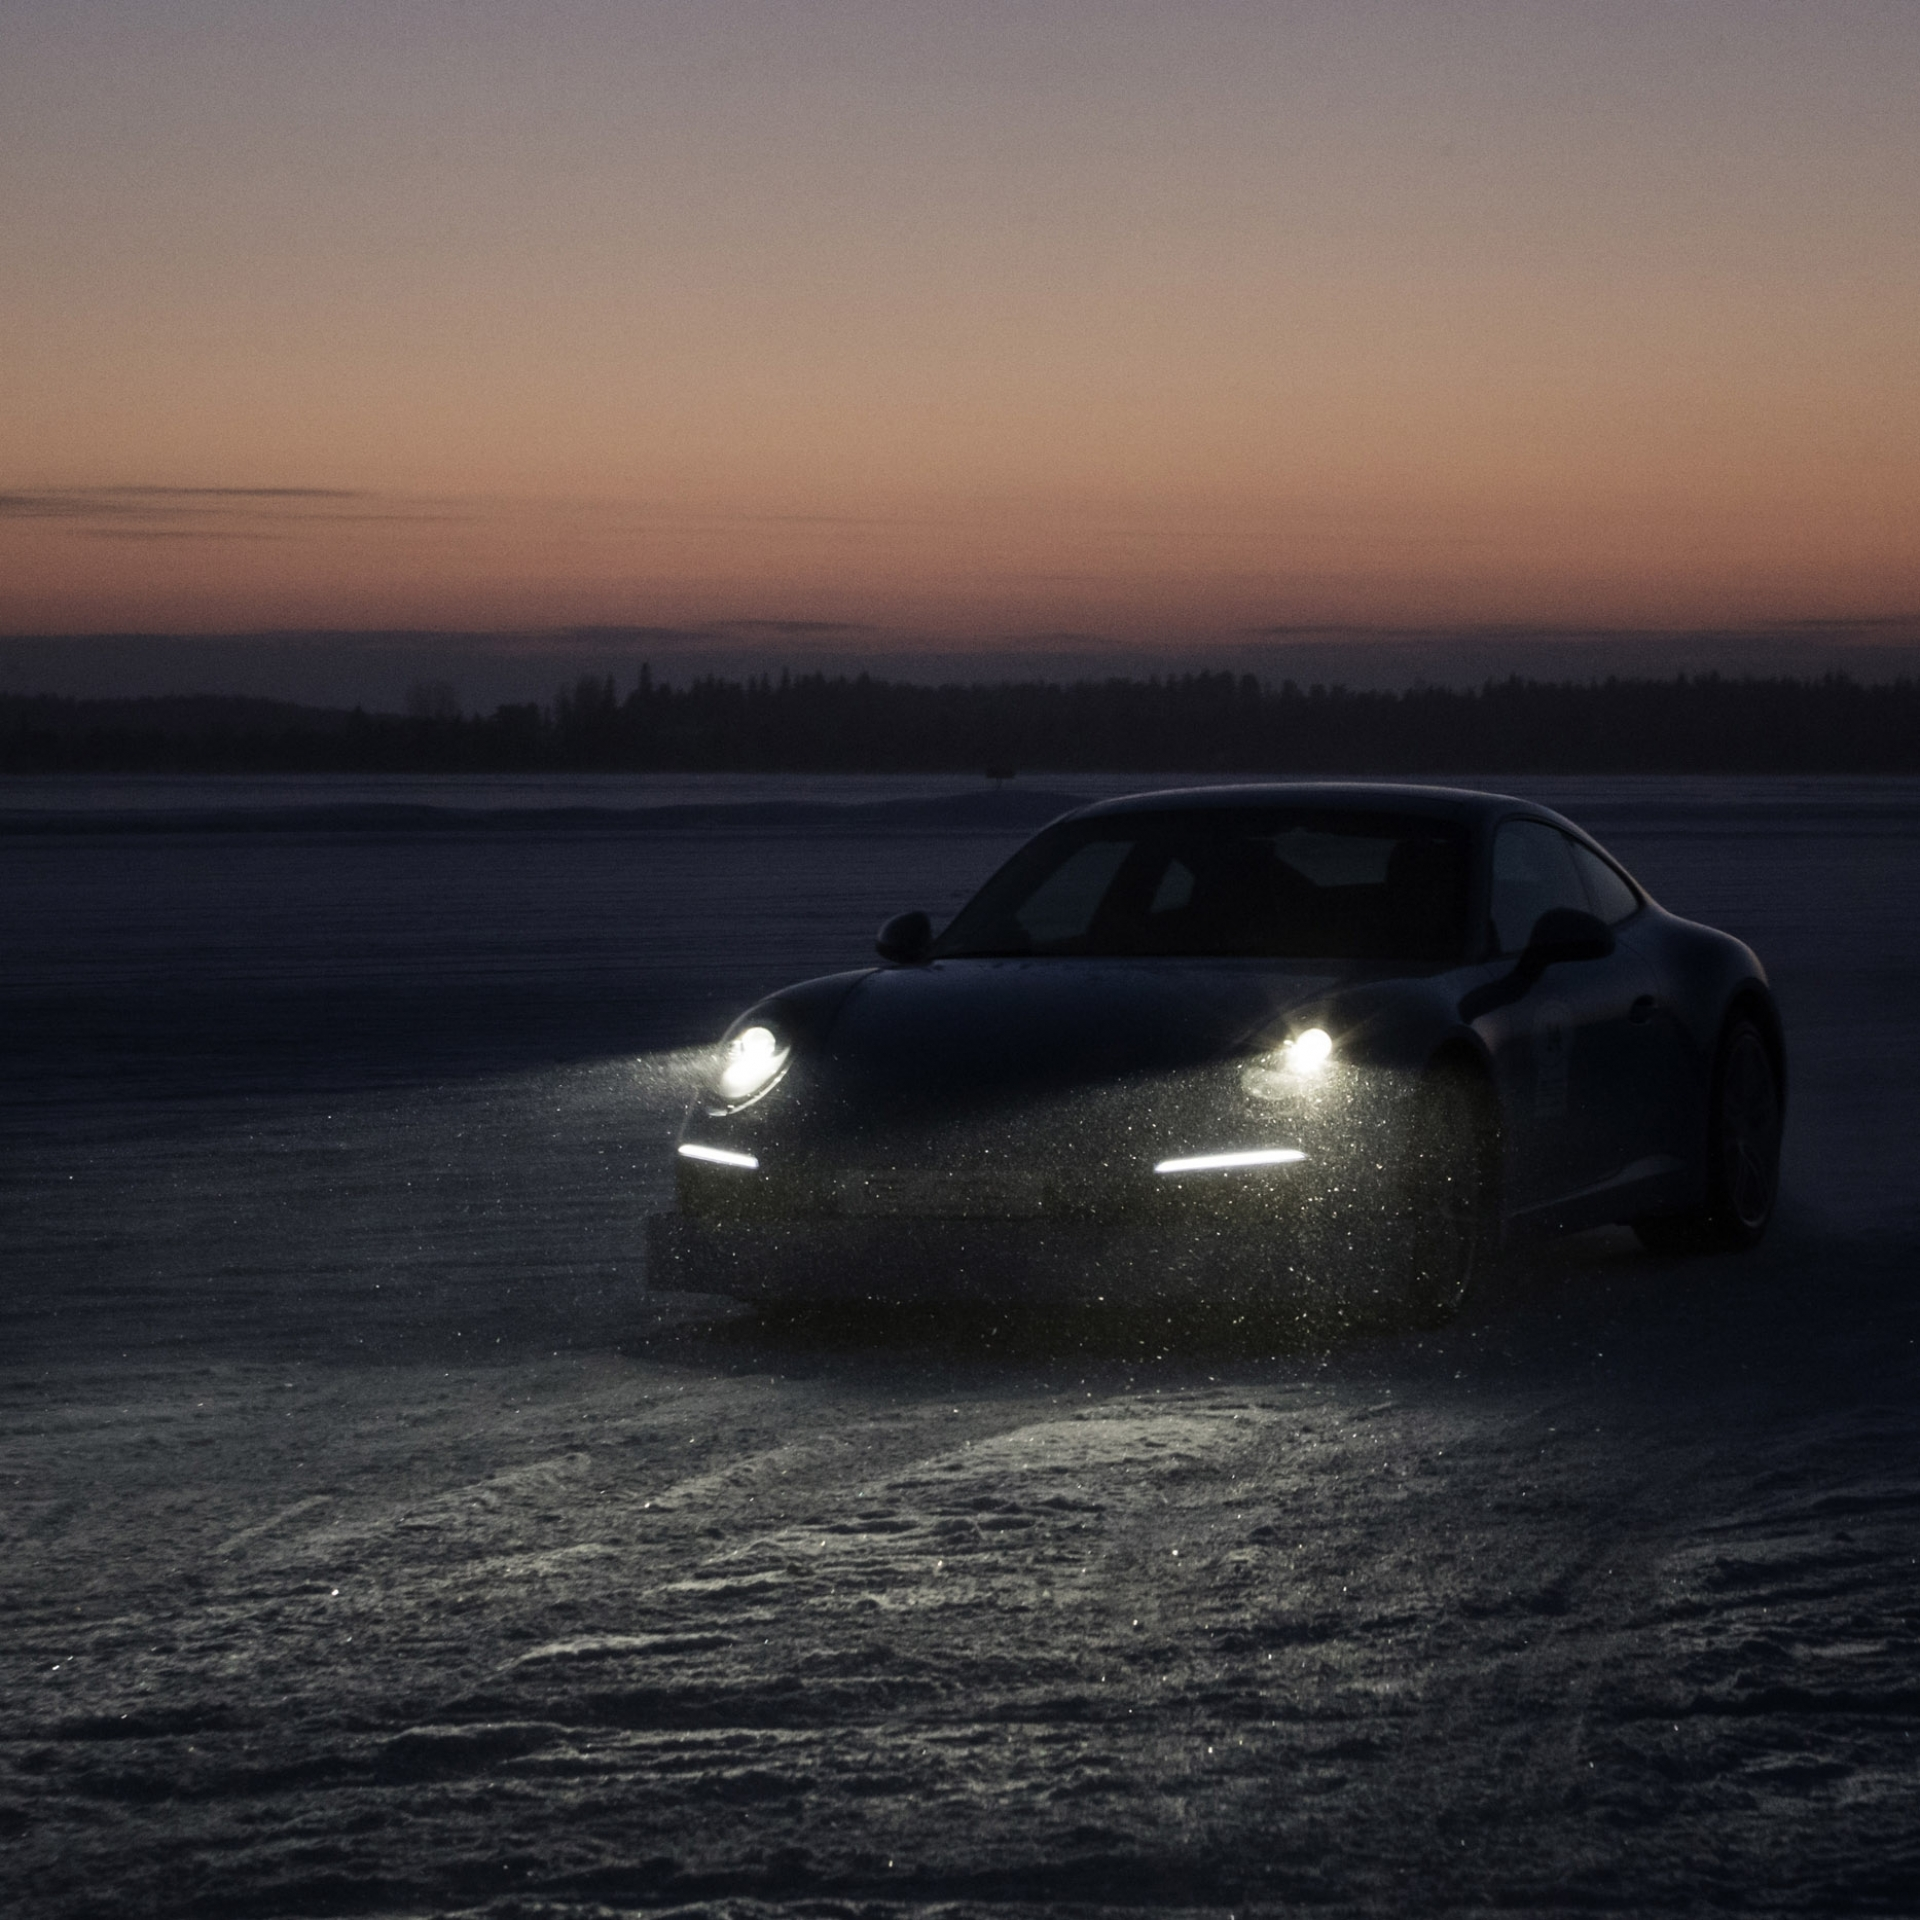 Low Light, Fotografie, Winter, Porsche